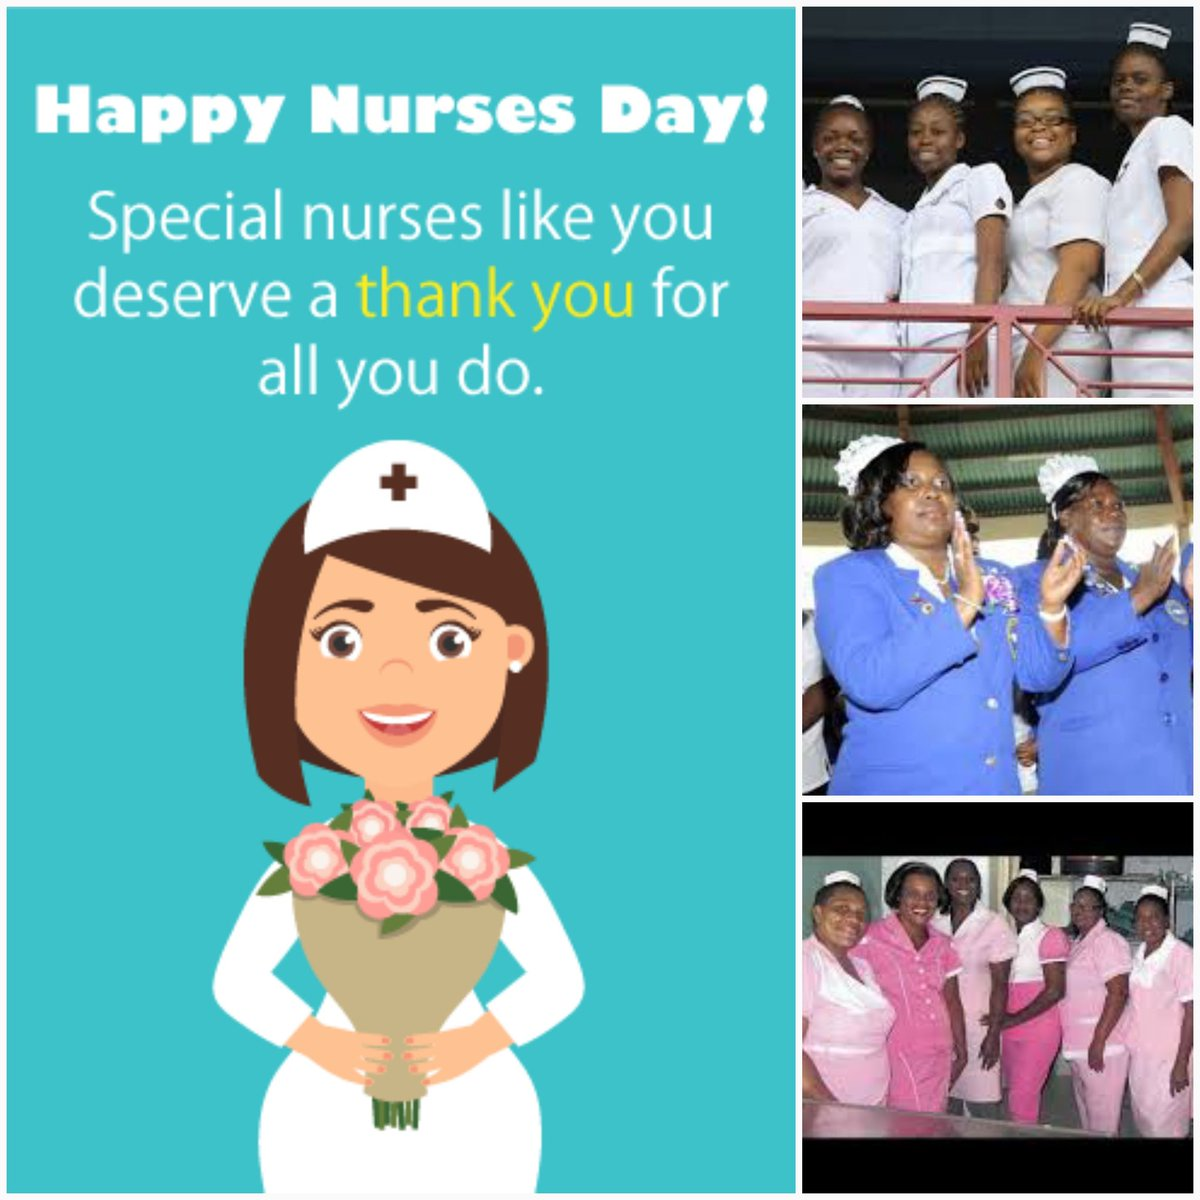 To all our wonderful Nurses who make sacrifices and care for the Jamaican people, sometimes under very difficult conditions.  May the care & kindness you give to others come back to you ten fold. May you be blessed with good health, happiness & abundance.  Happy Nurses Day 2020 https://t.co/tWnryzxpkJ